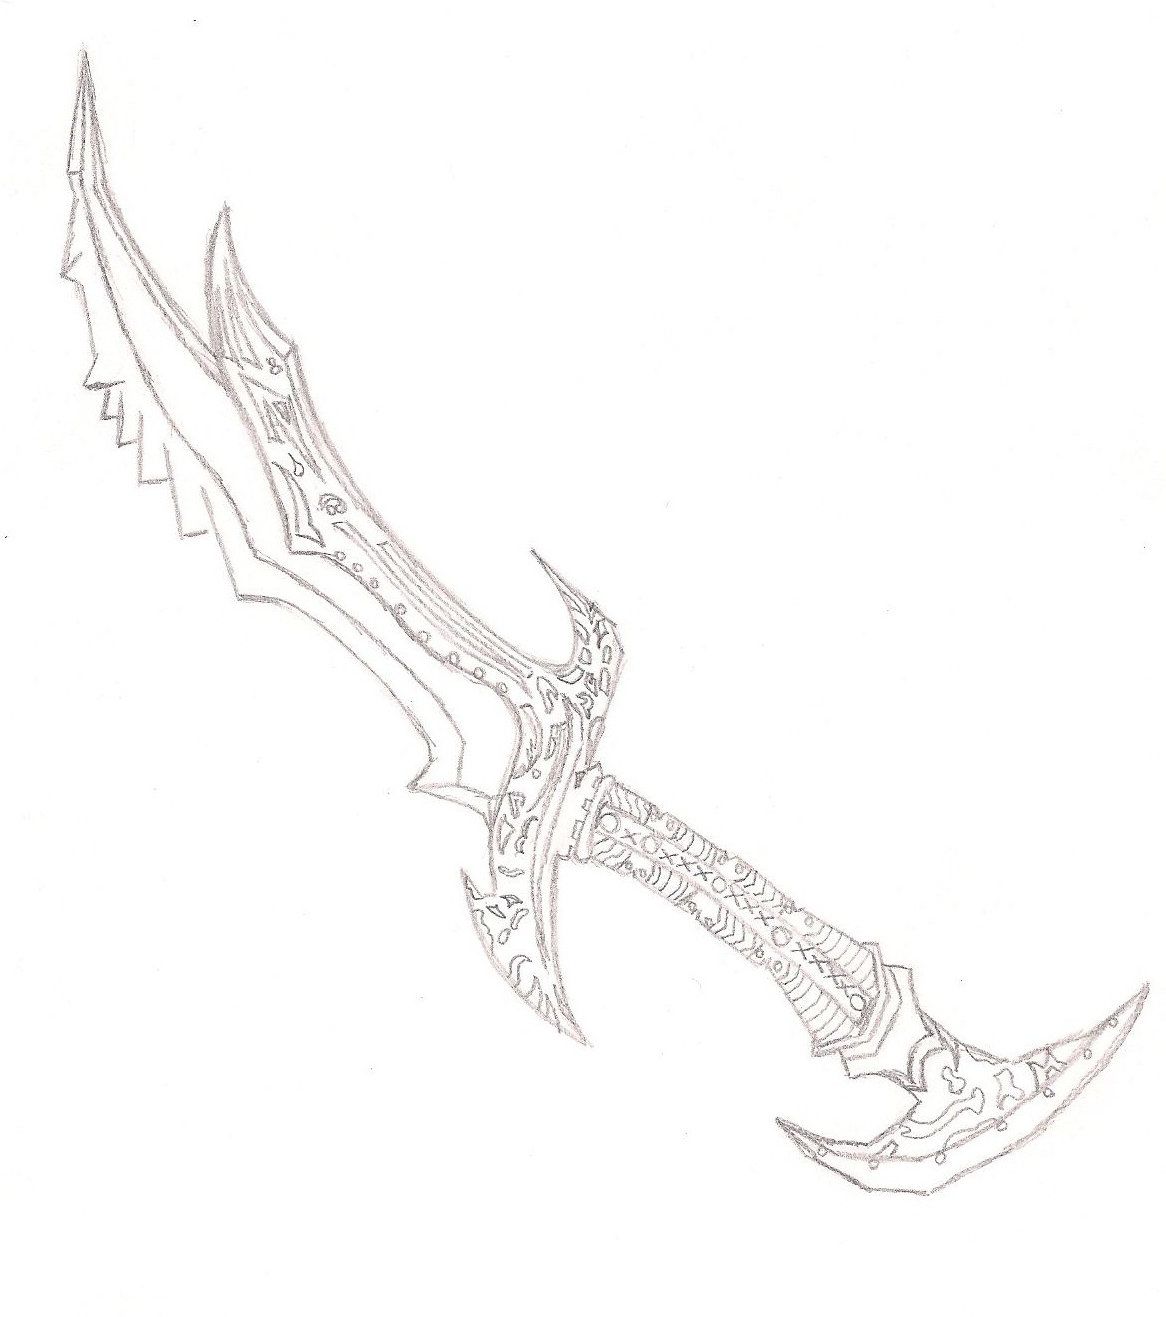 Drawn weapon skyrim FailedxExperimentx13 Sword FailedxExperimentx13 Daedric Daedric